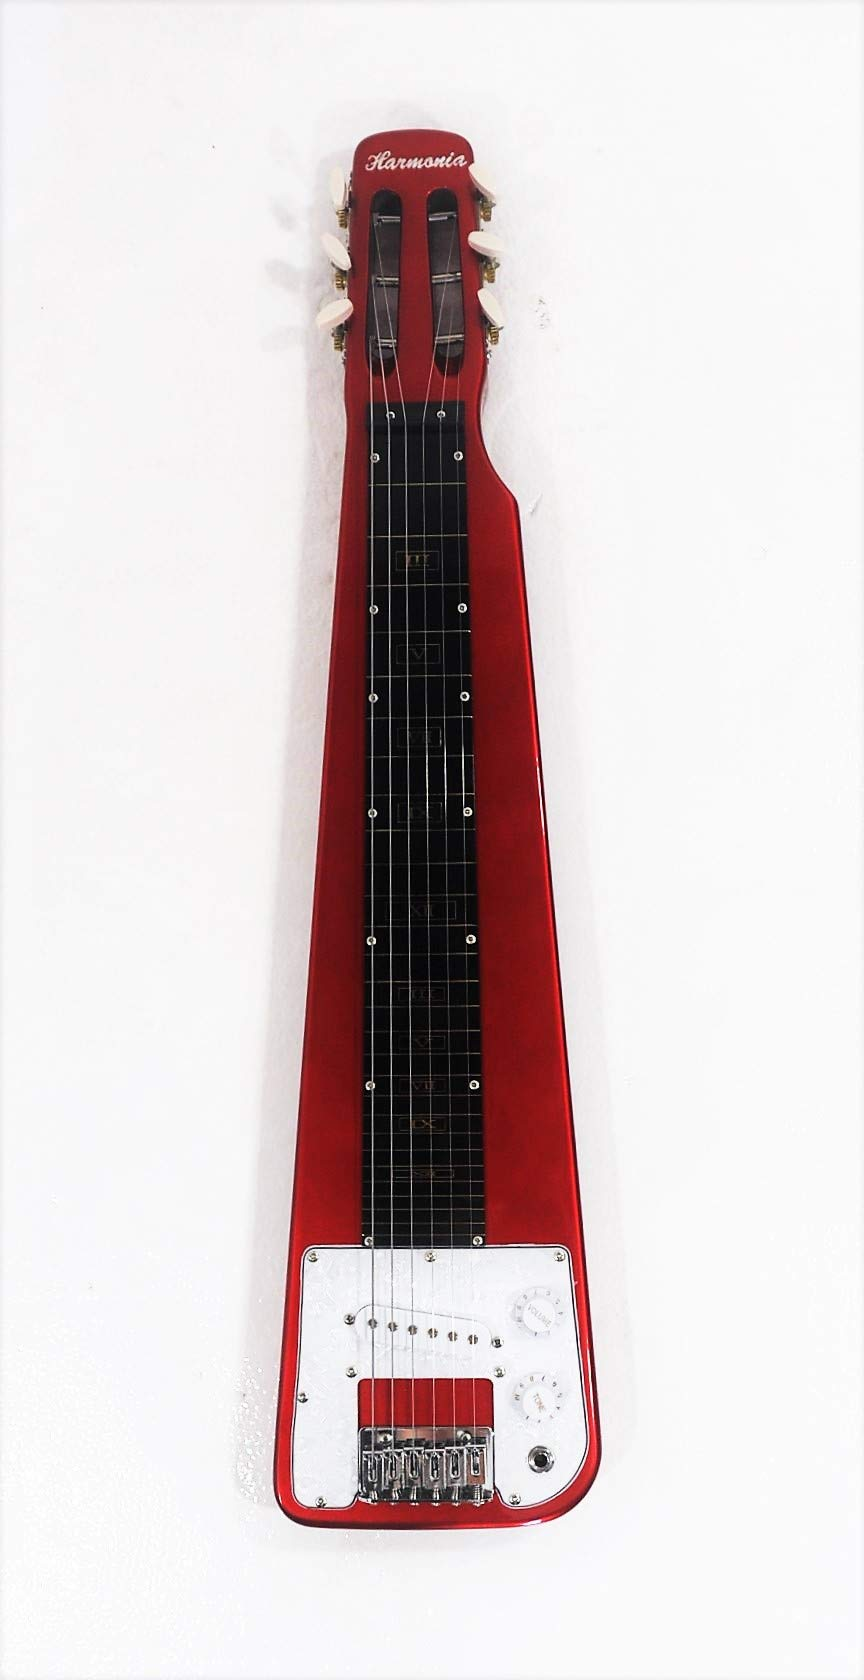 Lap Steel Guitar, 6 Steel String, Metallic Red Polish Body, w/a cable